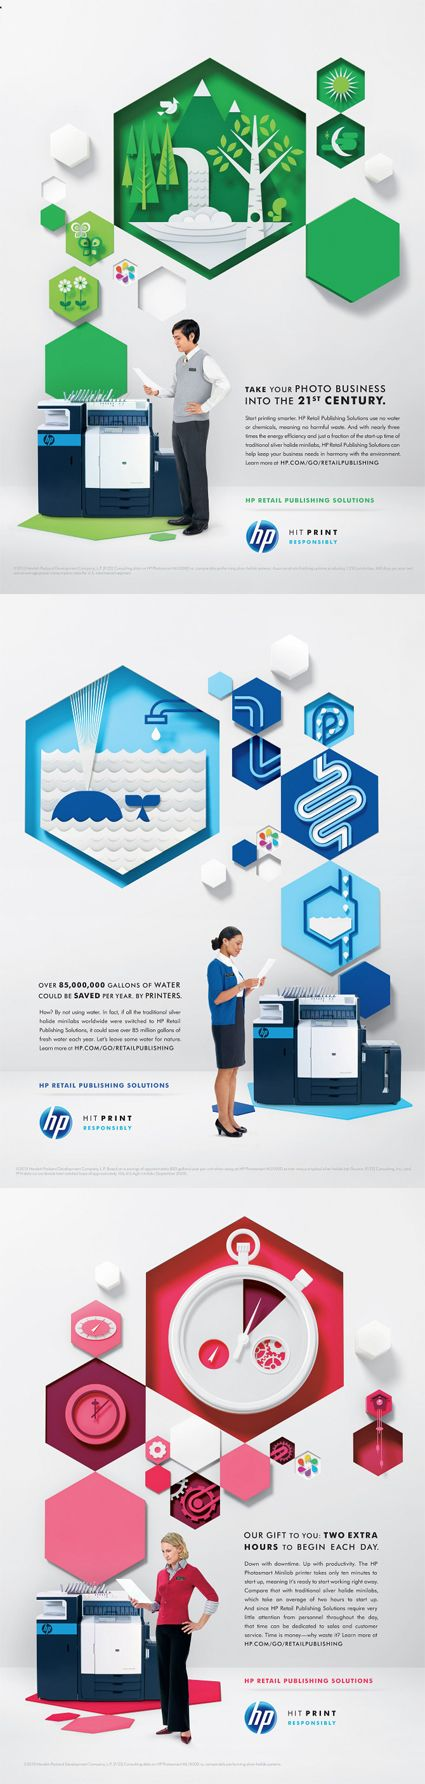 HP Ads by Alan Peters